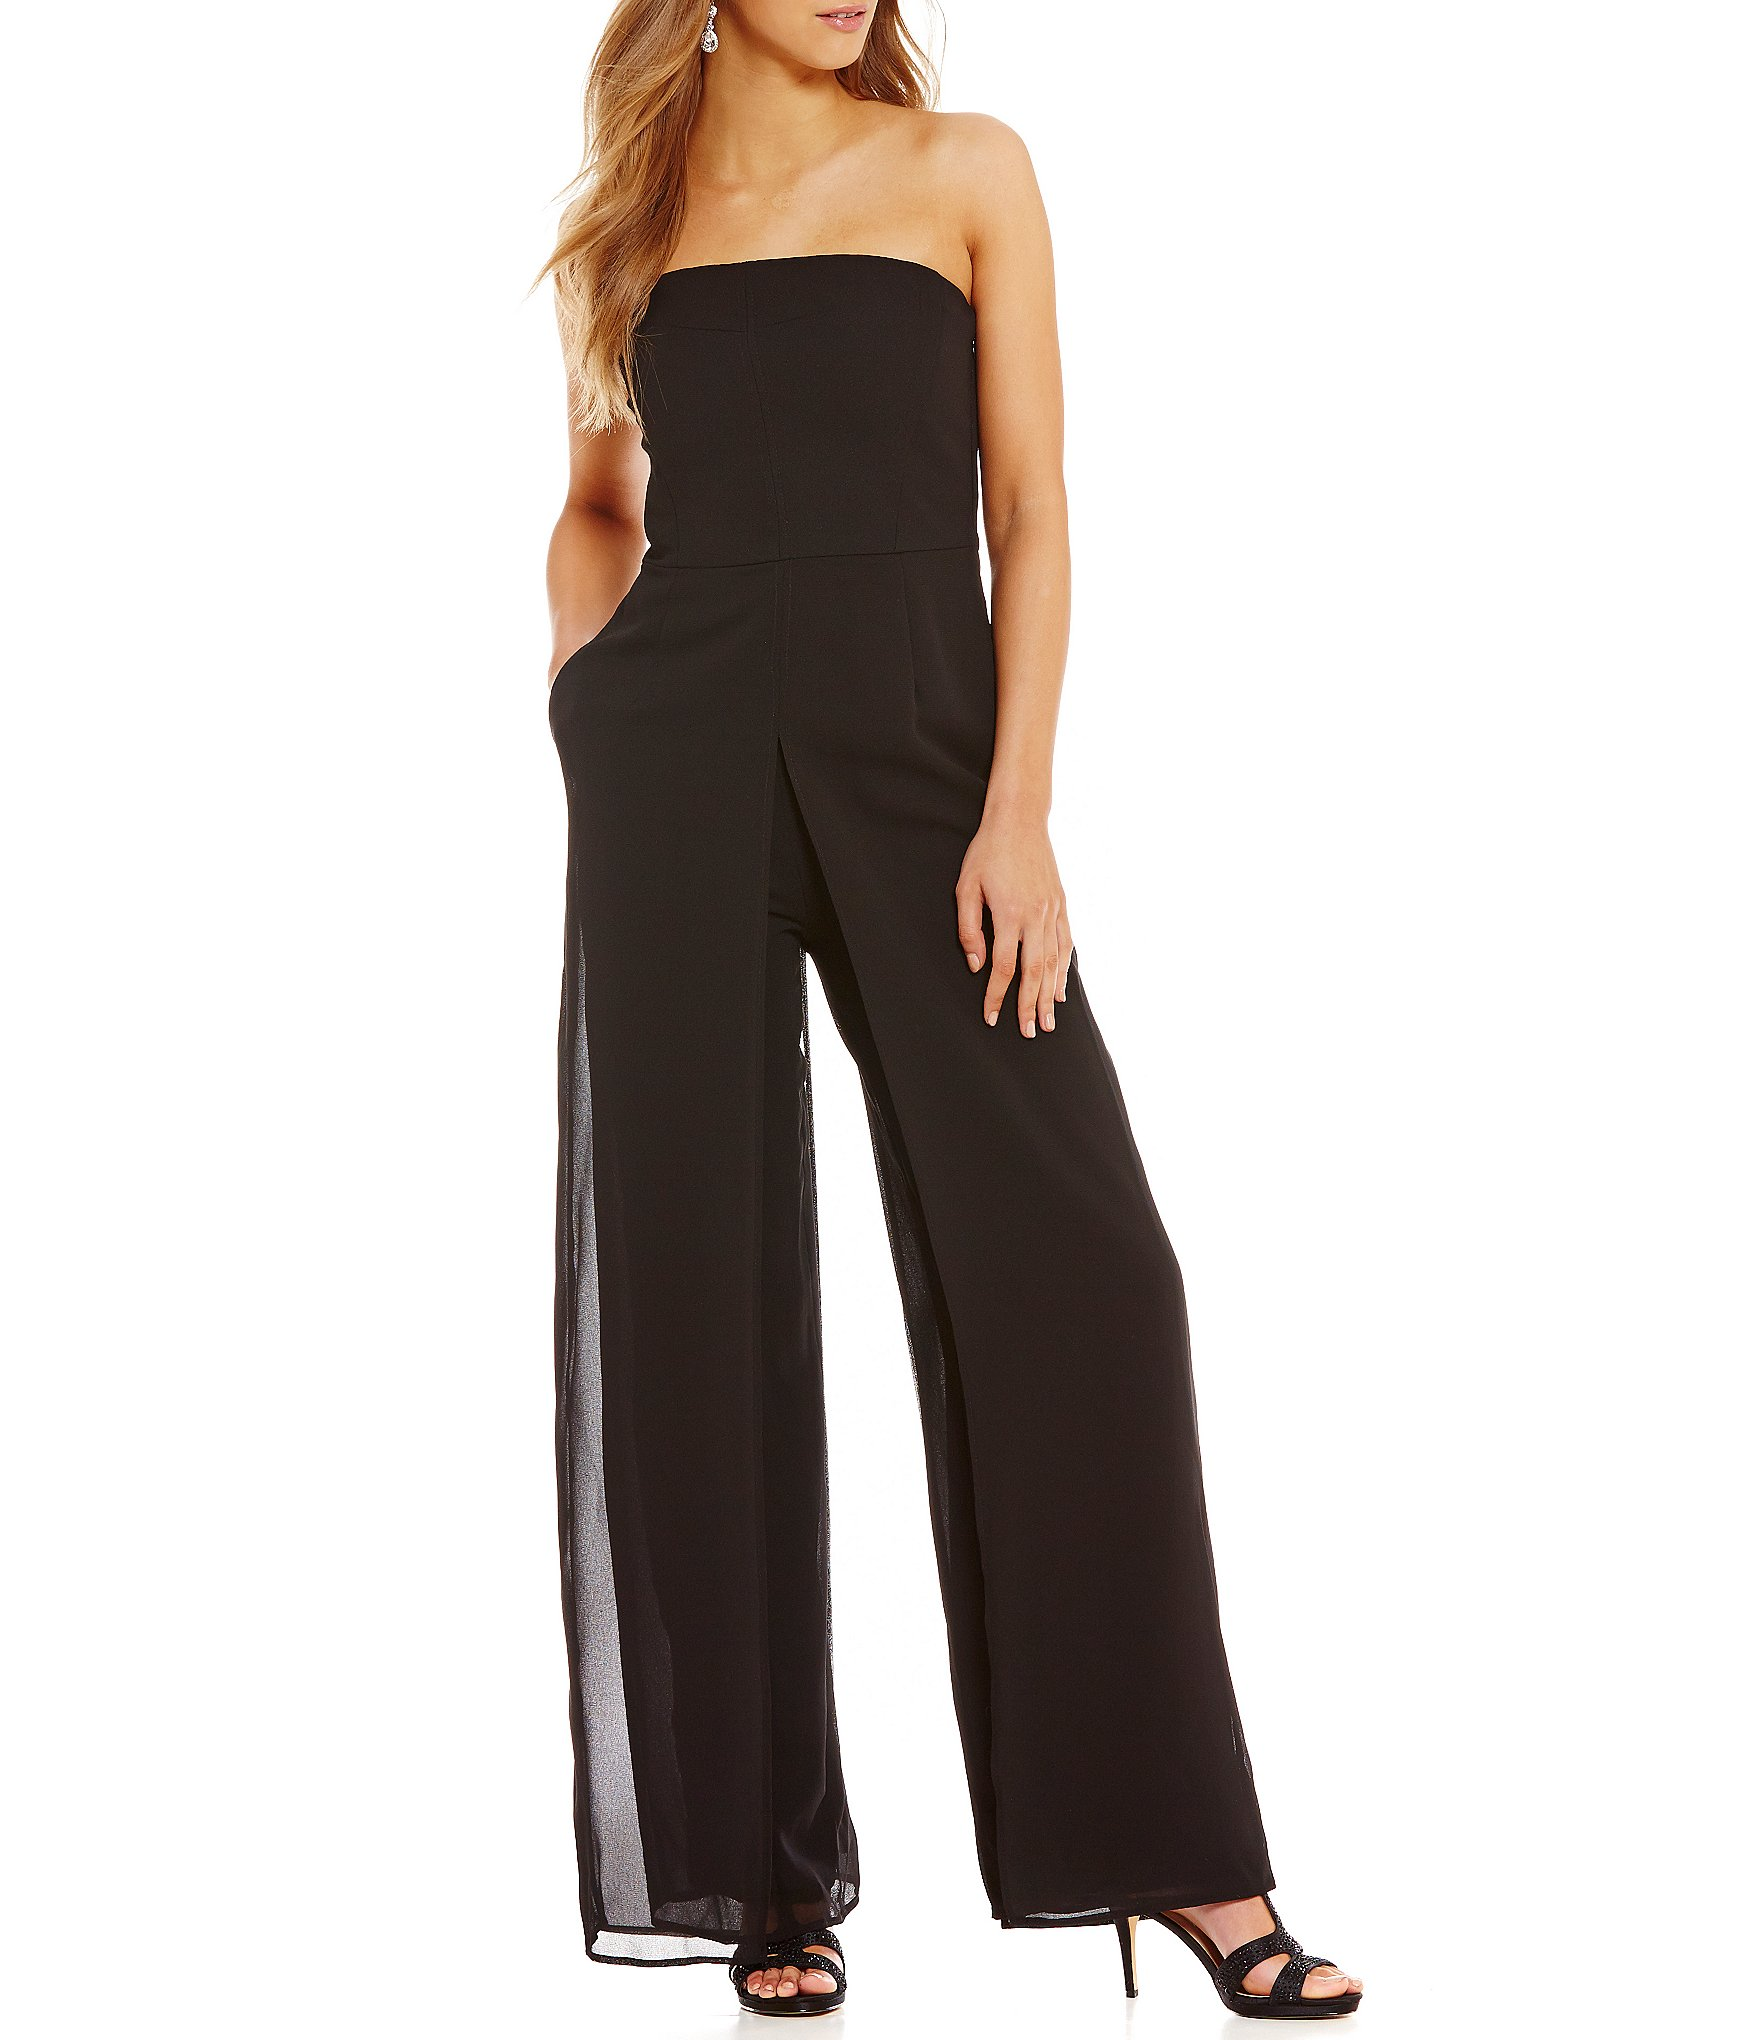 Jumpsuits for Juniors Dressy | Dressy Jumpsuit | Dressy Jumpsuits for Tall Women